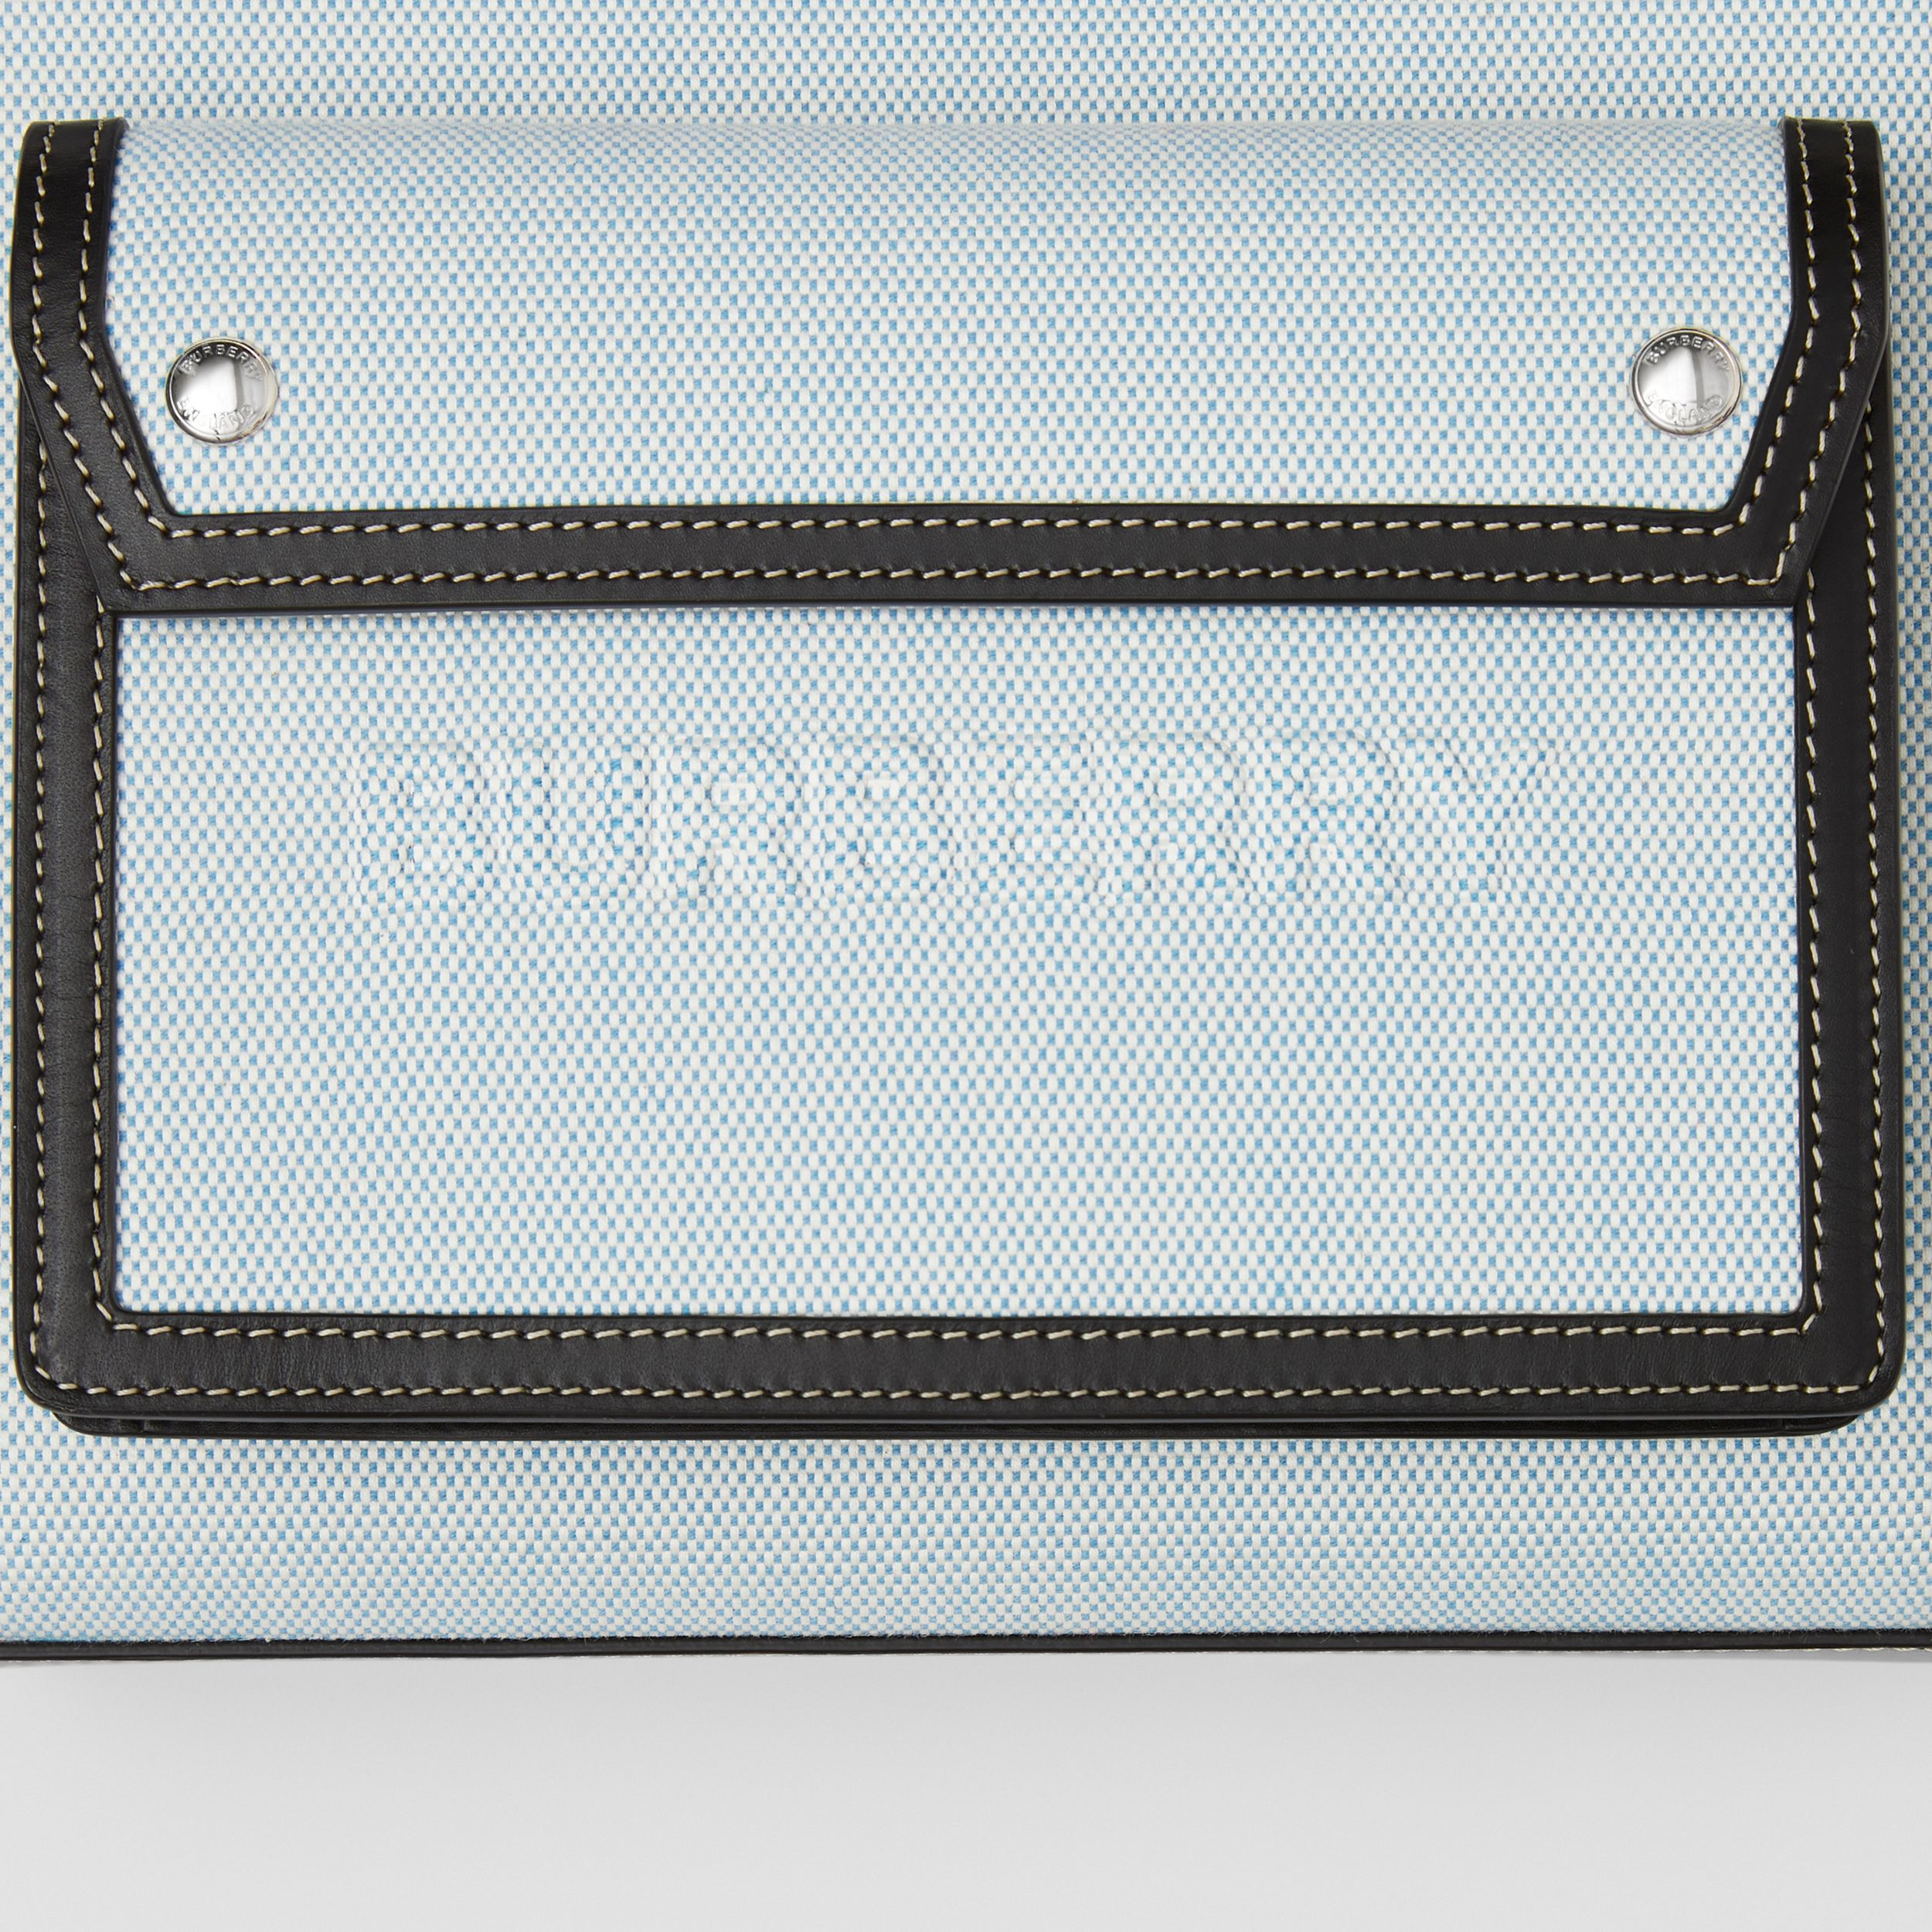 Mini Two-tone Canvas and Leather Pocket Bag in Vivid Cobalt - Women | Burberry - 2